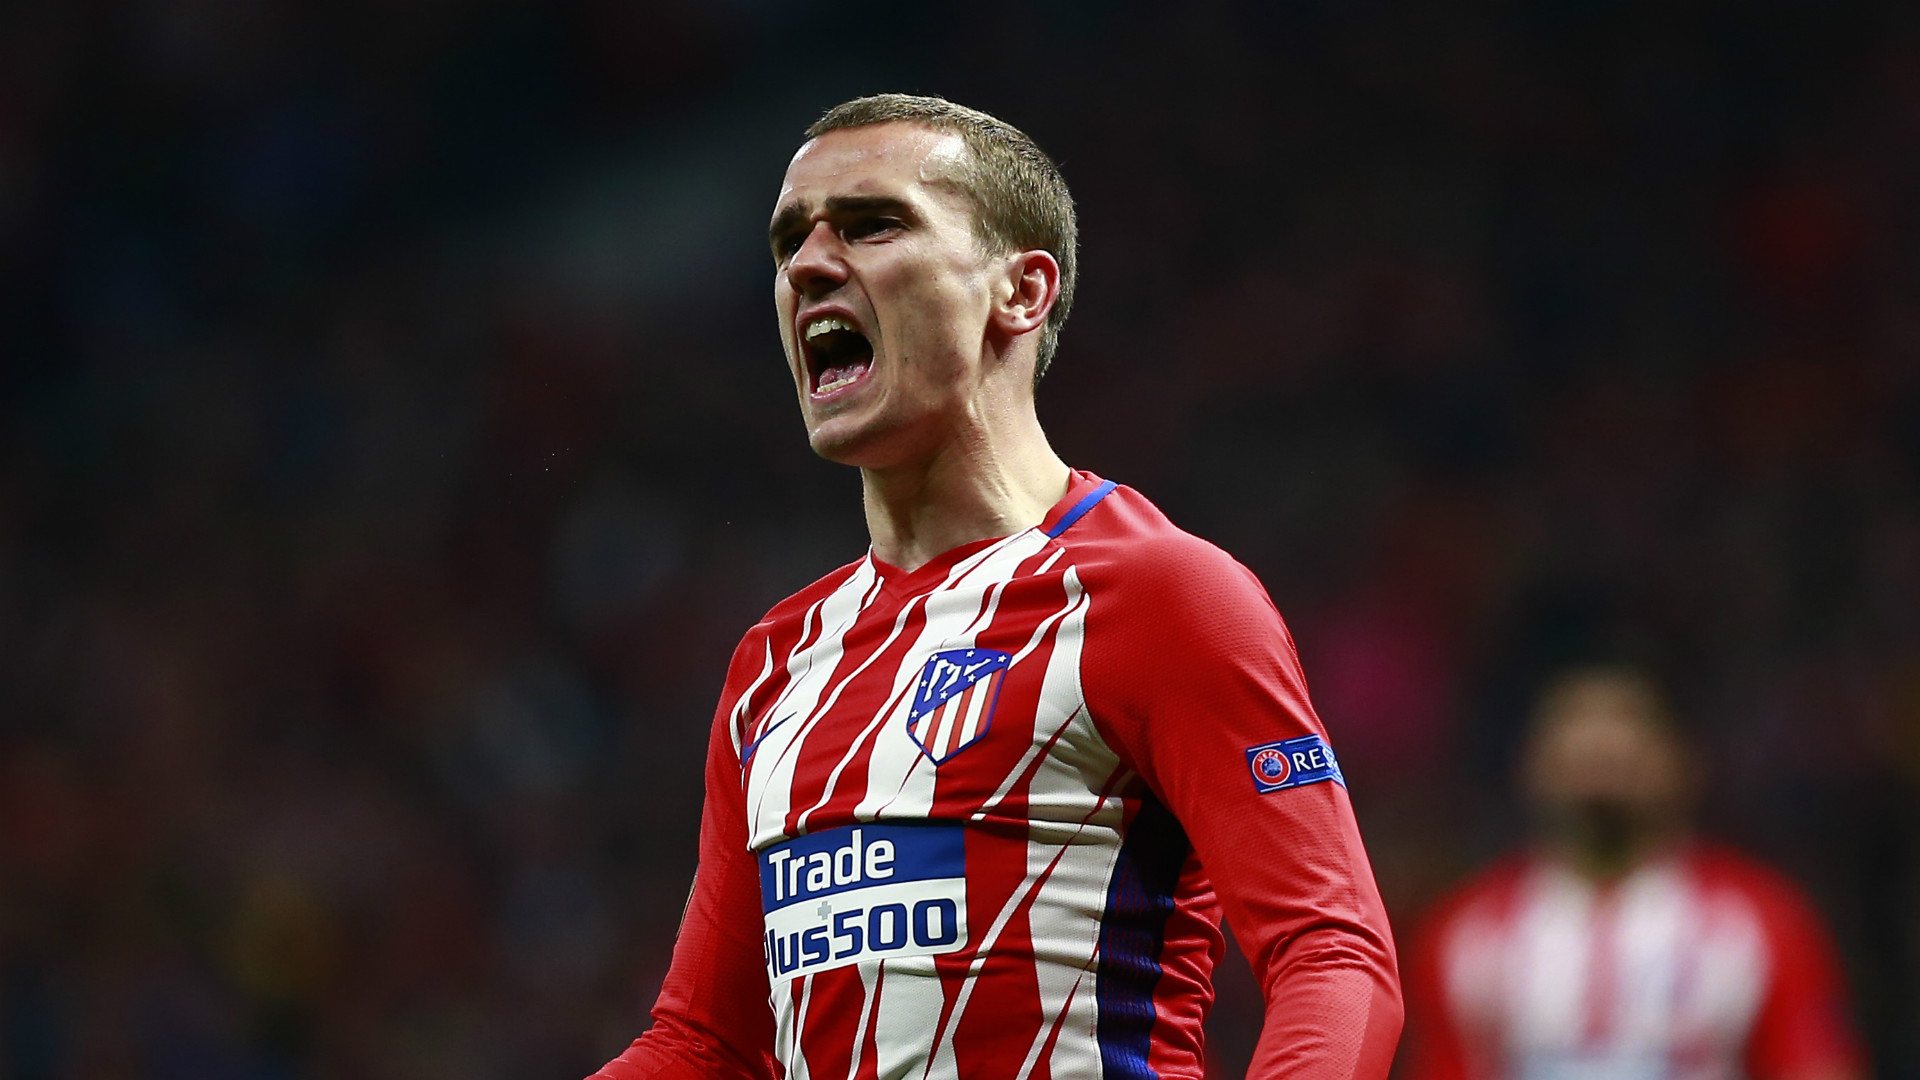 Barcelona met Griezmann's agent in October, confirms Bartomeu